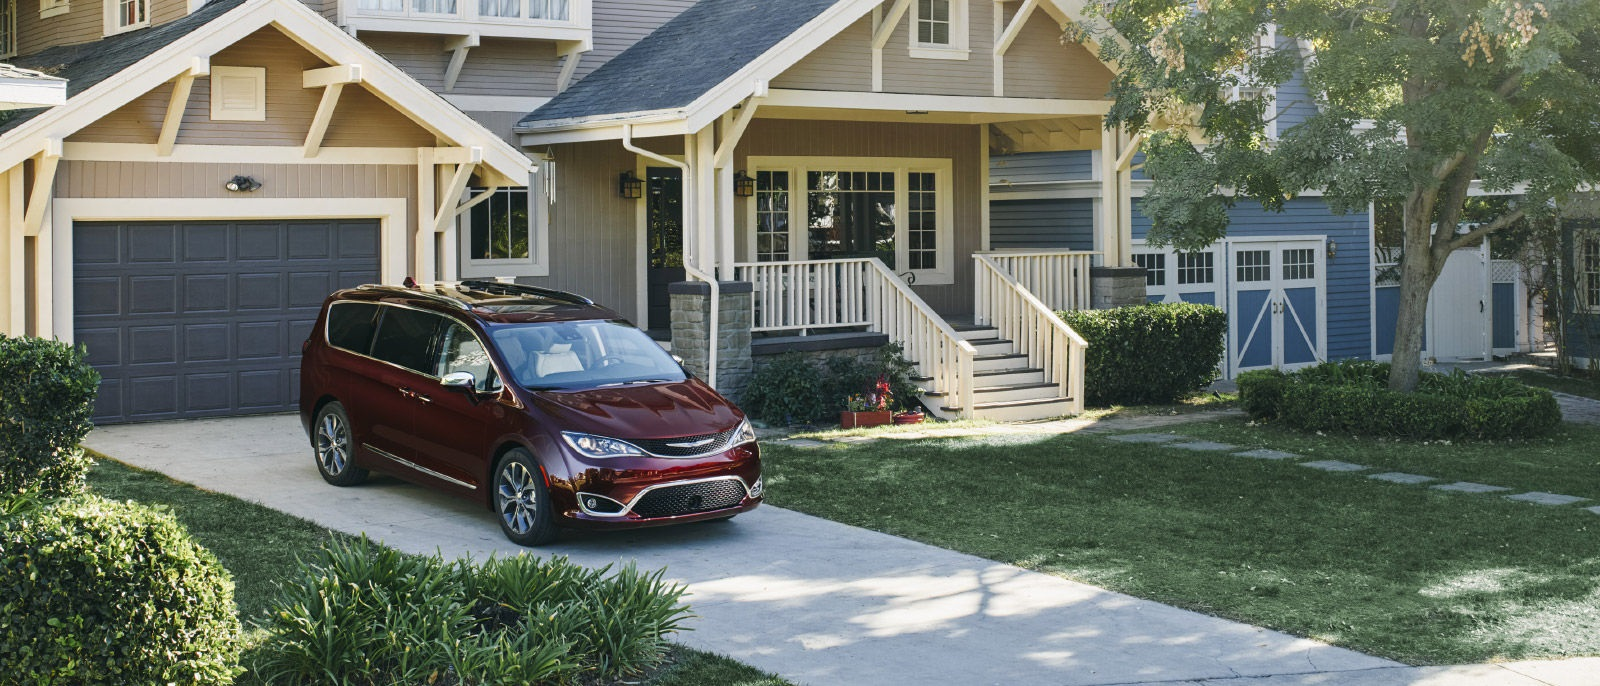 2017 Chrysler Pacifica Red Front